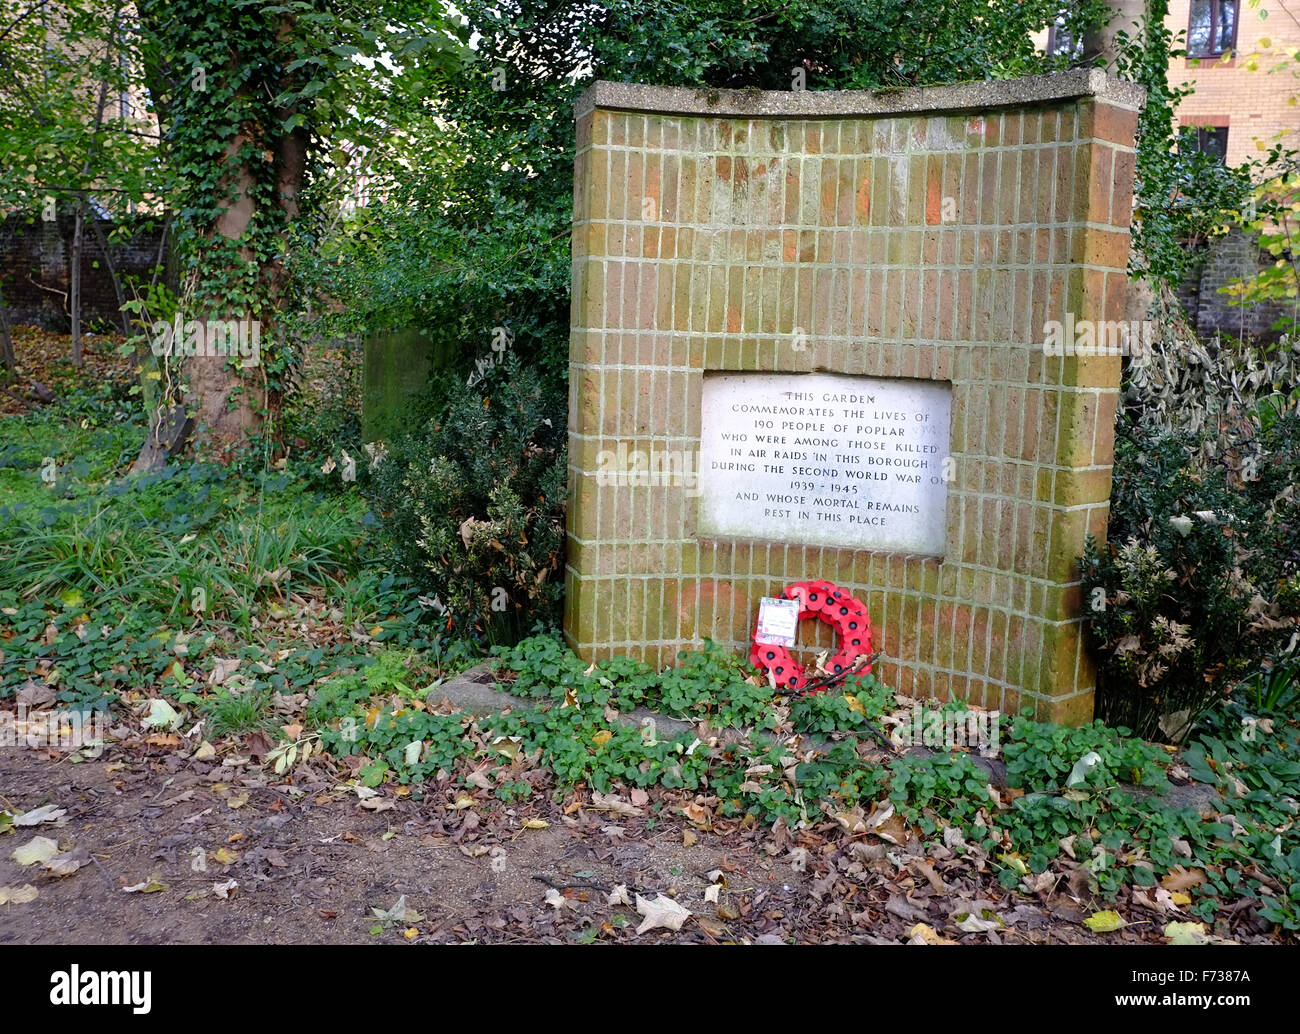 Memorial to those in Poplar, East London, killed in world war 2 air raids.  In Tower Hamlets Cemetery Park. - Stock Image